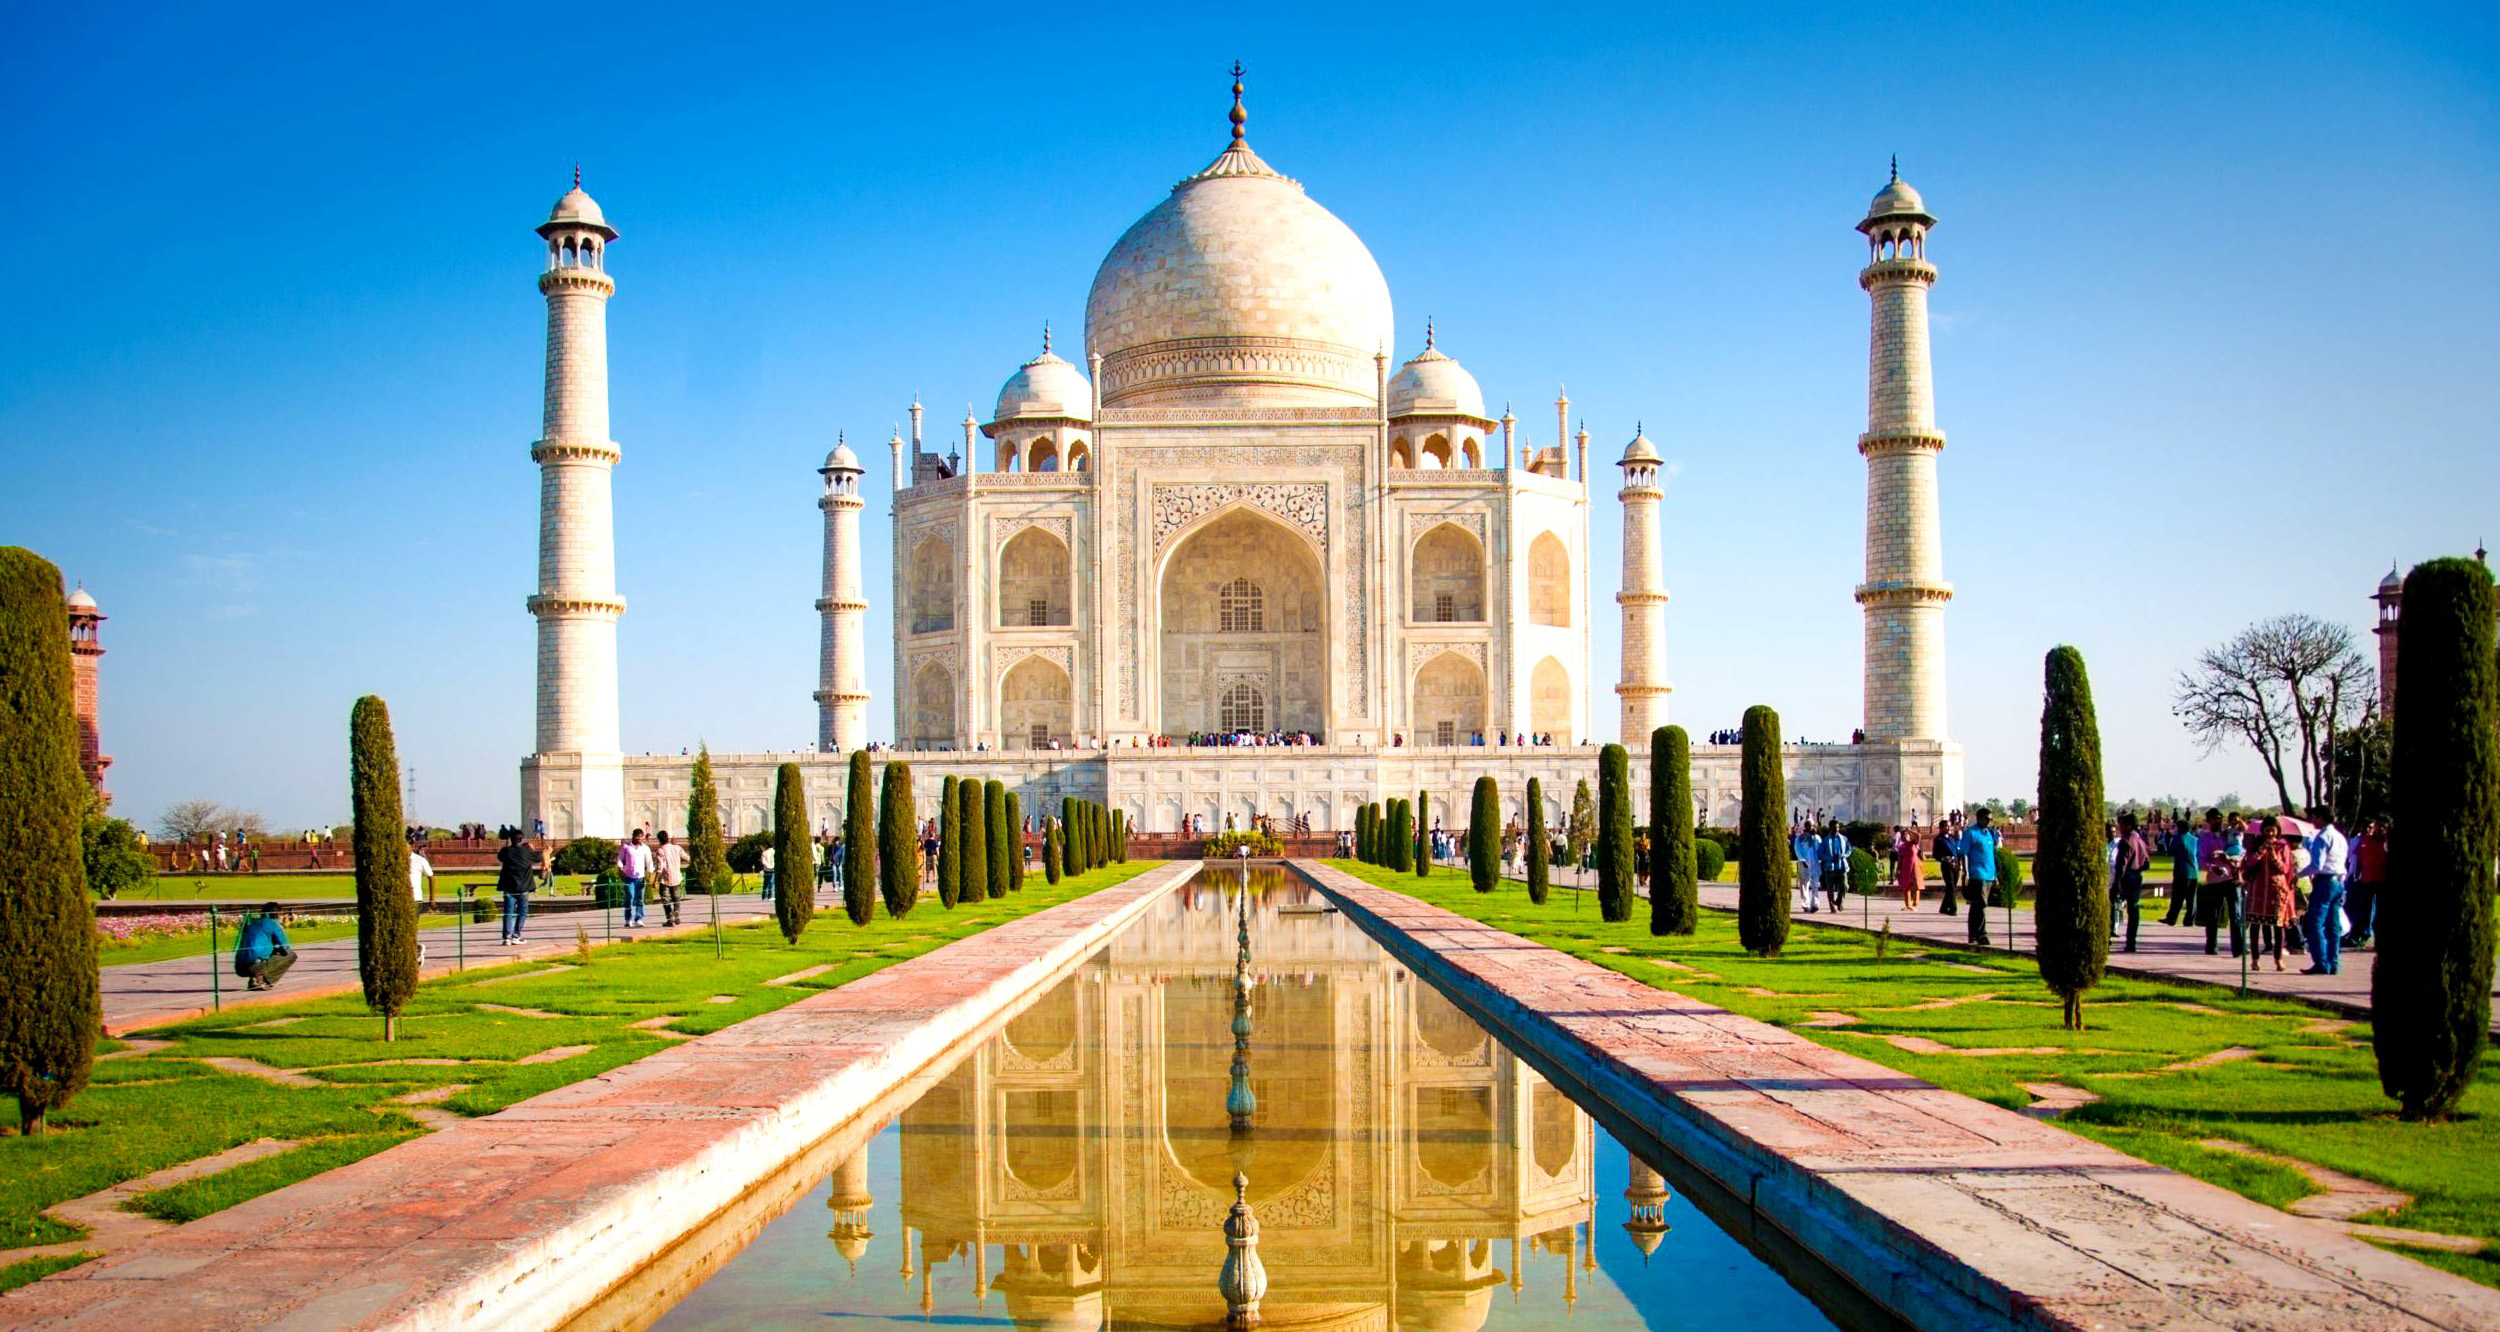 taj mahal india - world heritage site in india